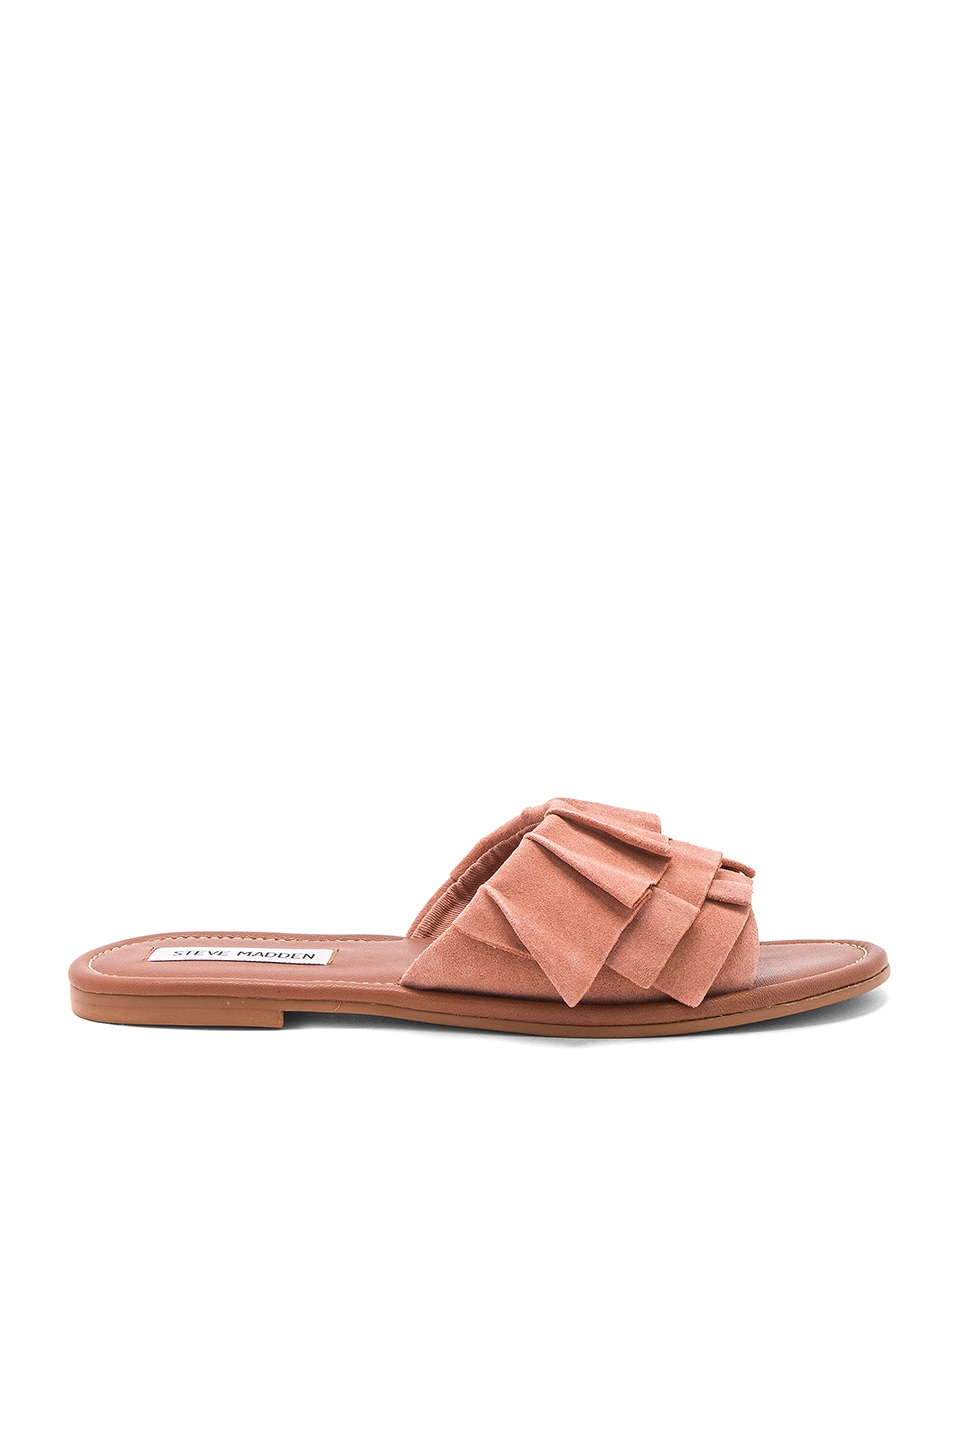 Steve Madden Get Down Slide in Rose